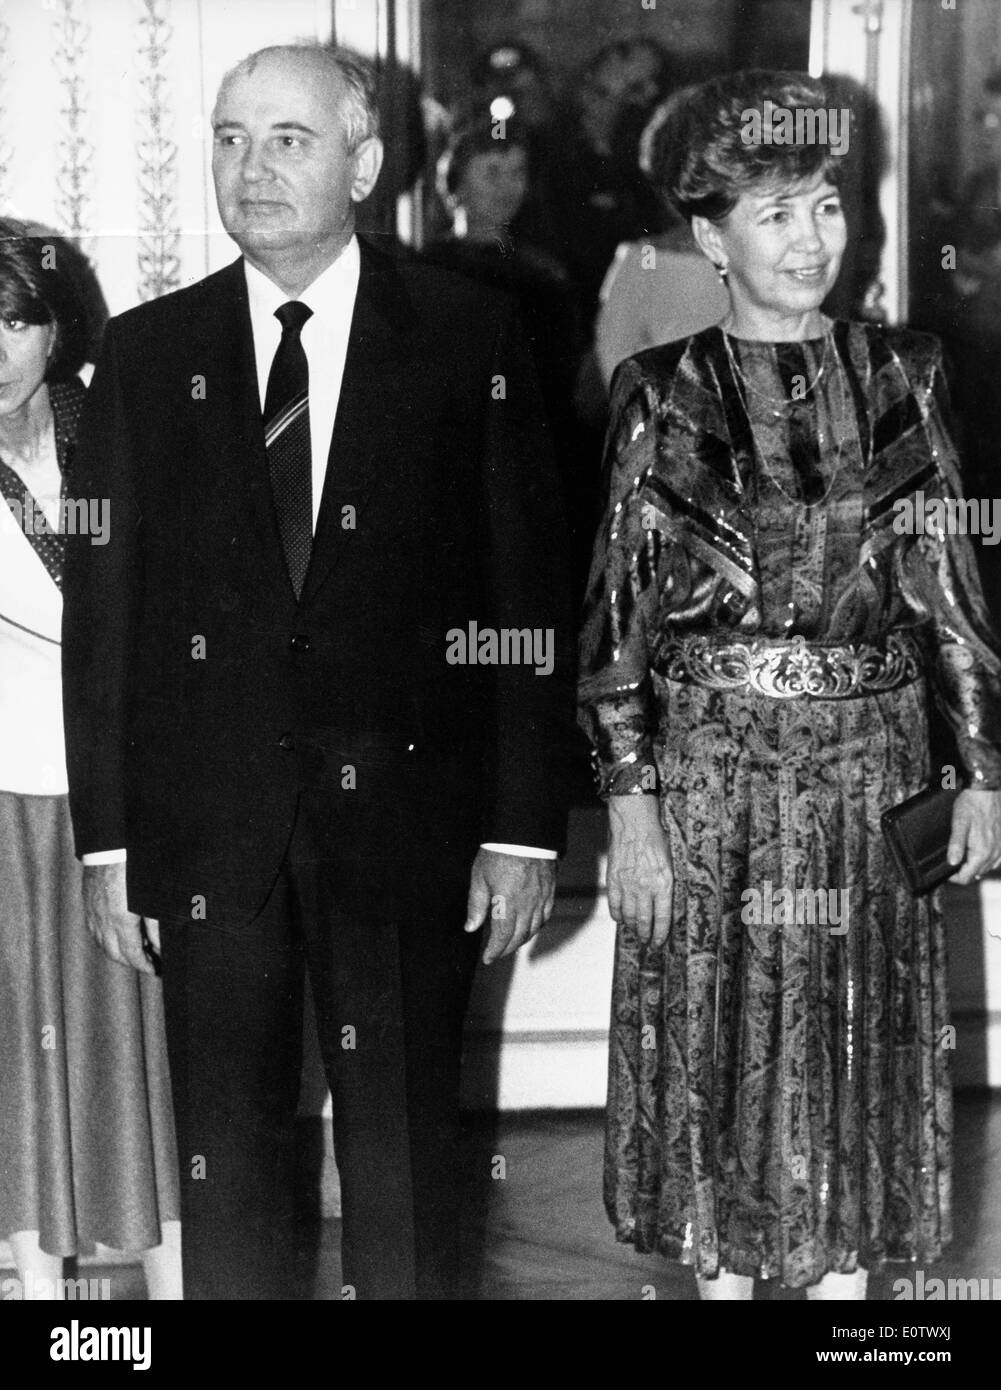 Mikhail Gorbachev with wife Raisa Gorbachova - Stock Image